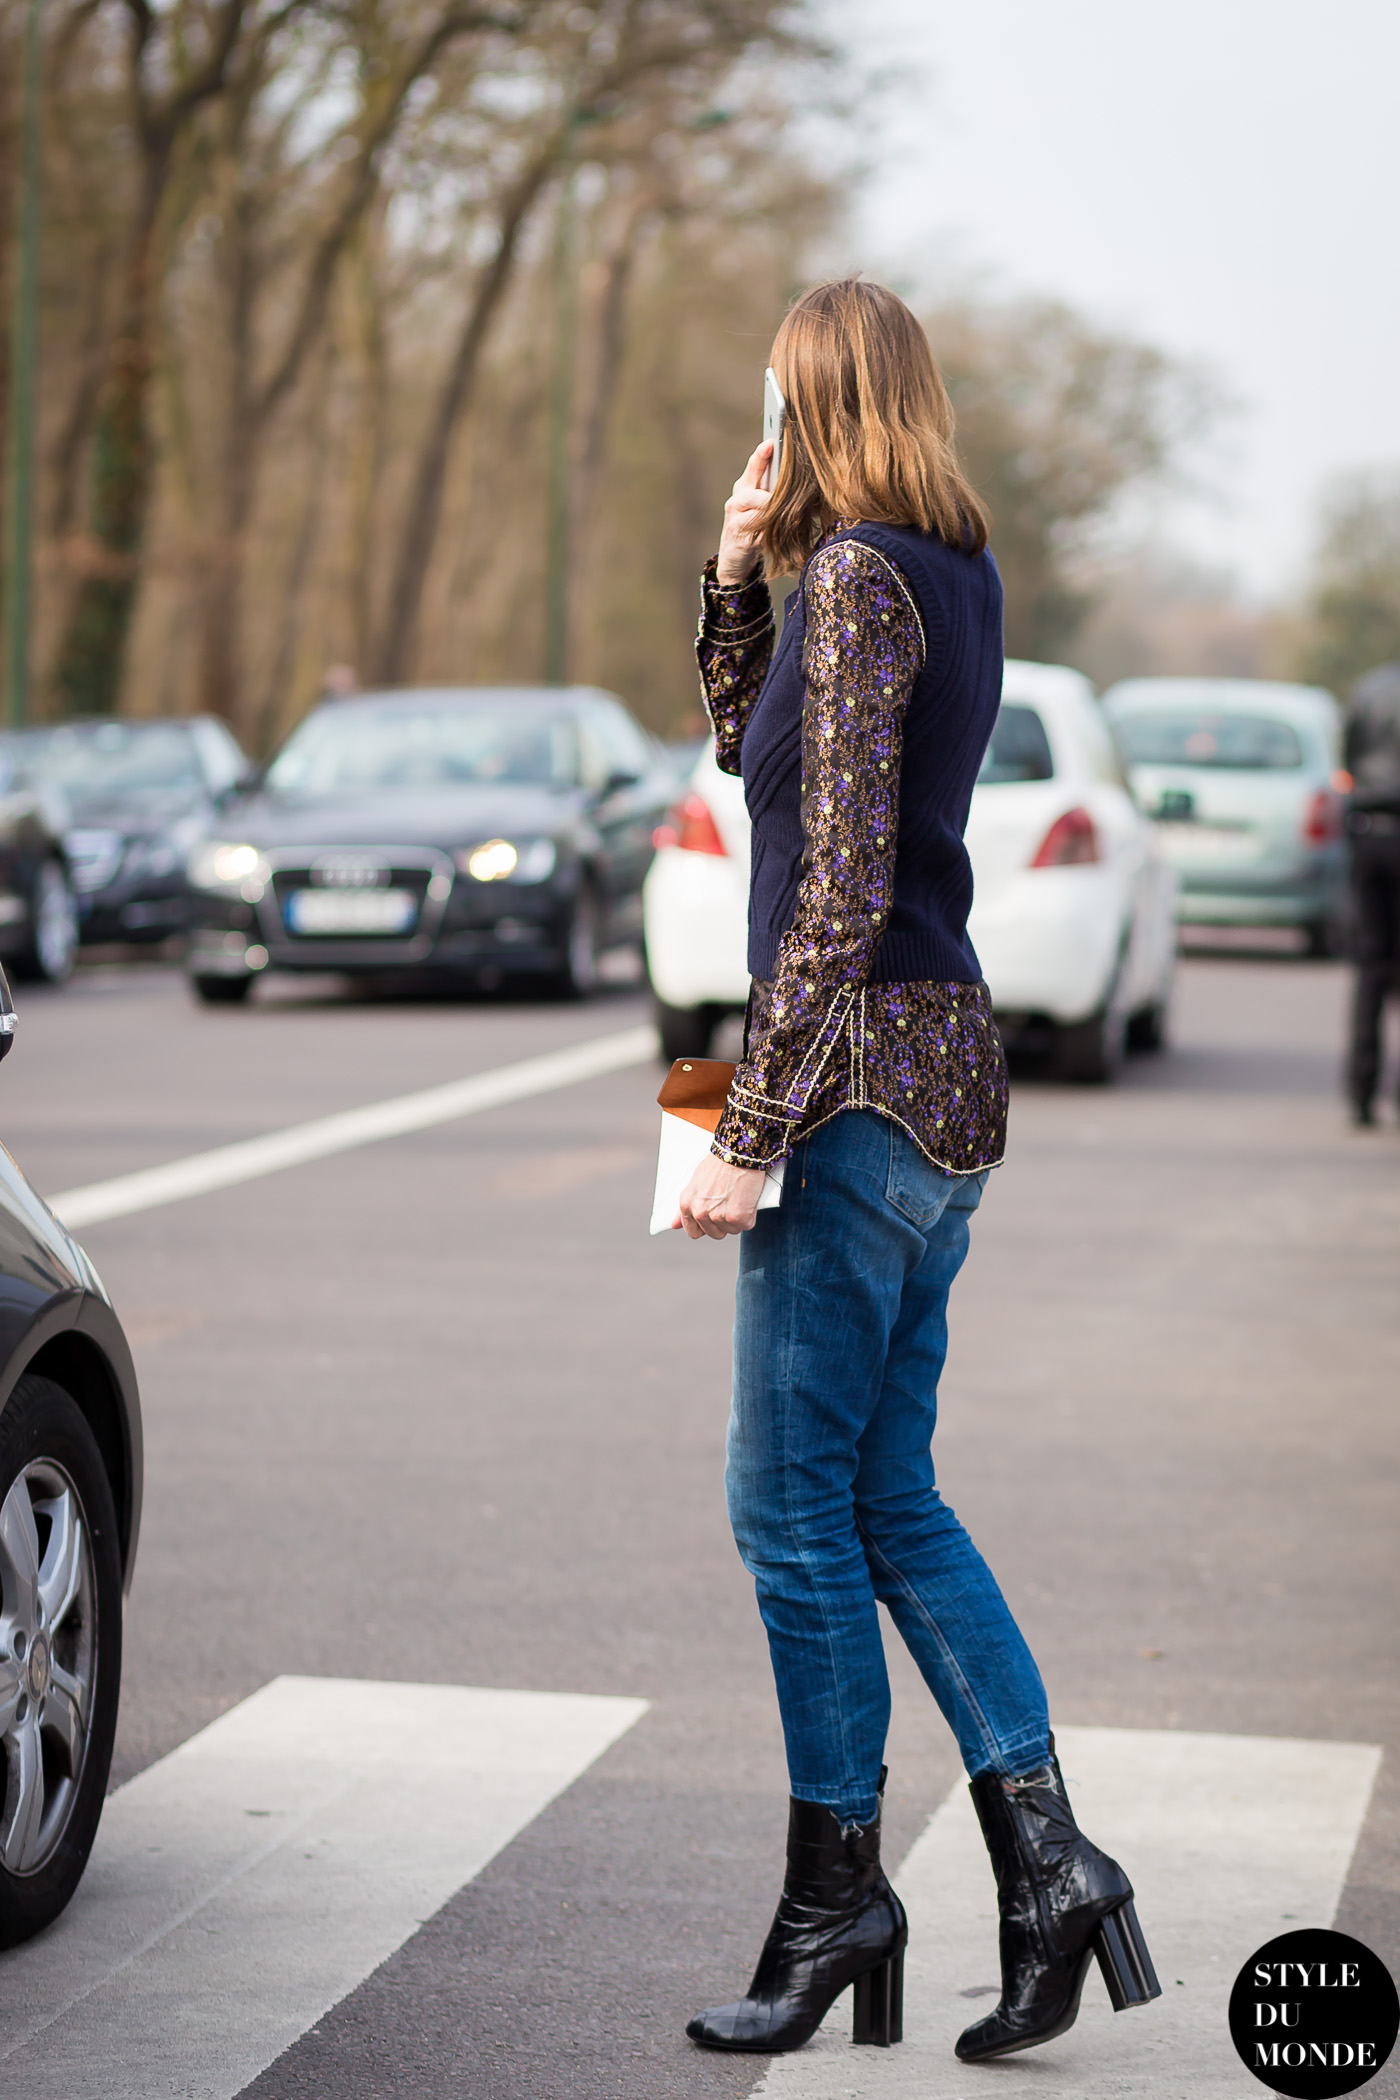 Annette Weber Street Style Street Fashion Streetsnaps by STYLEDUMONDE Street Style Fashion Photography